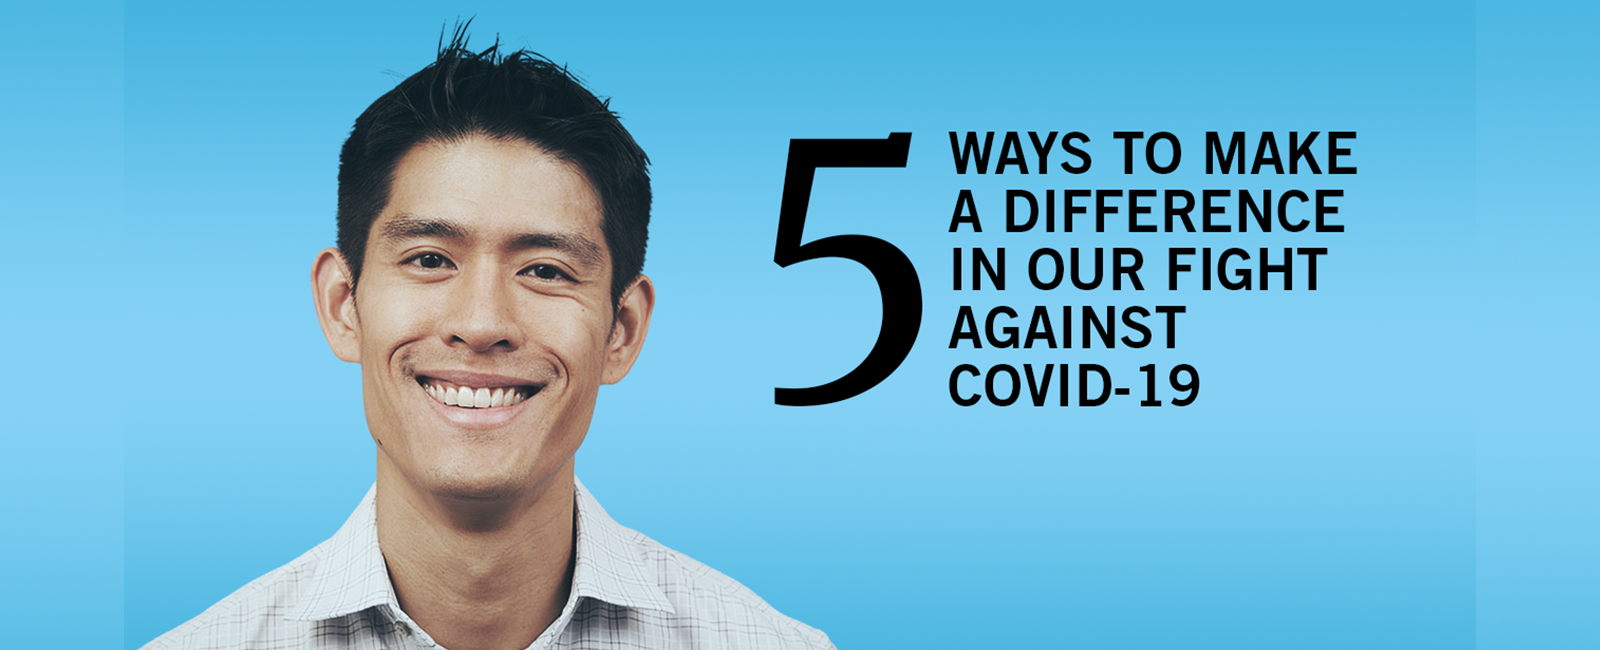 Five things you can do right now to make a difference in our fight against Covid19